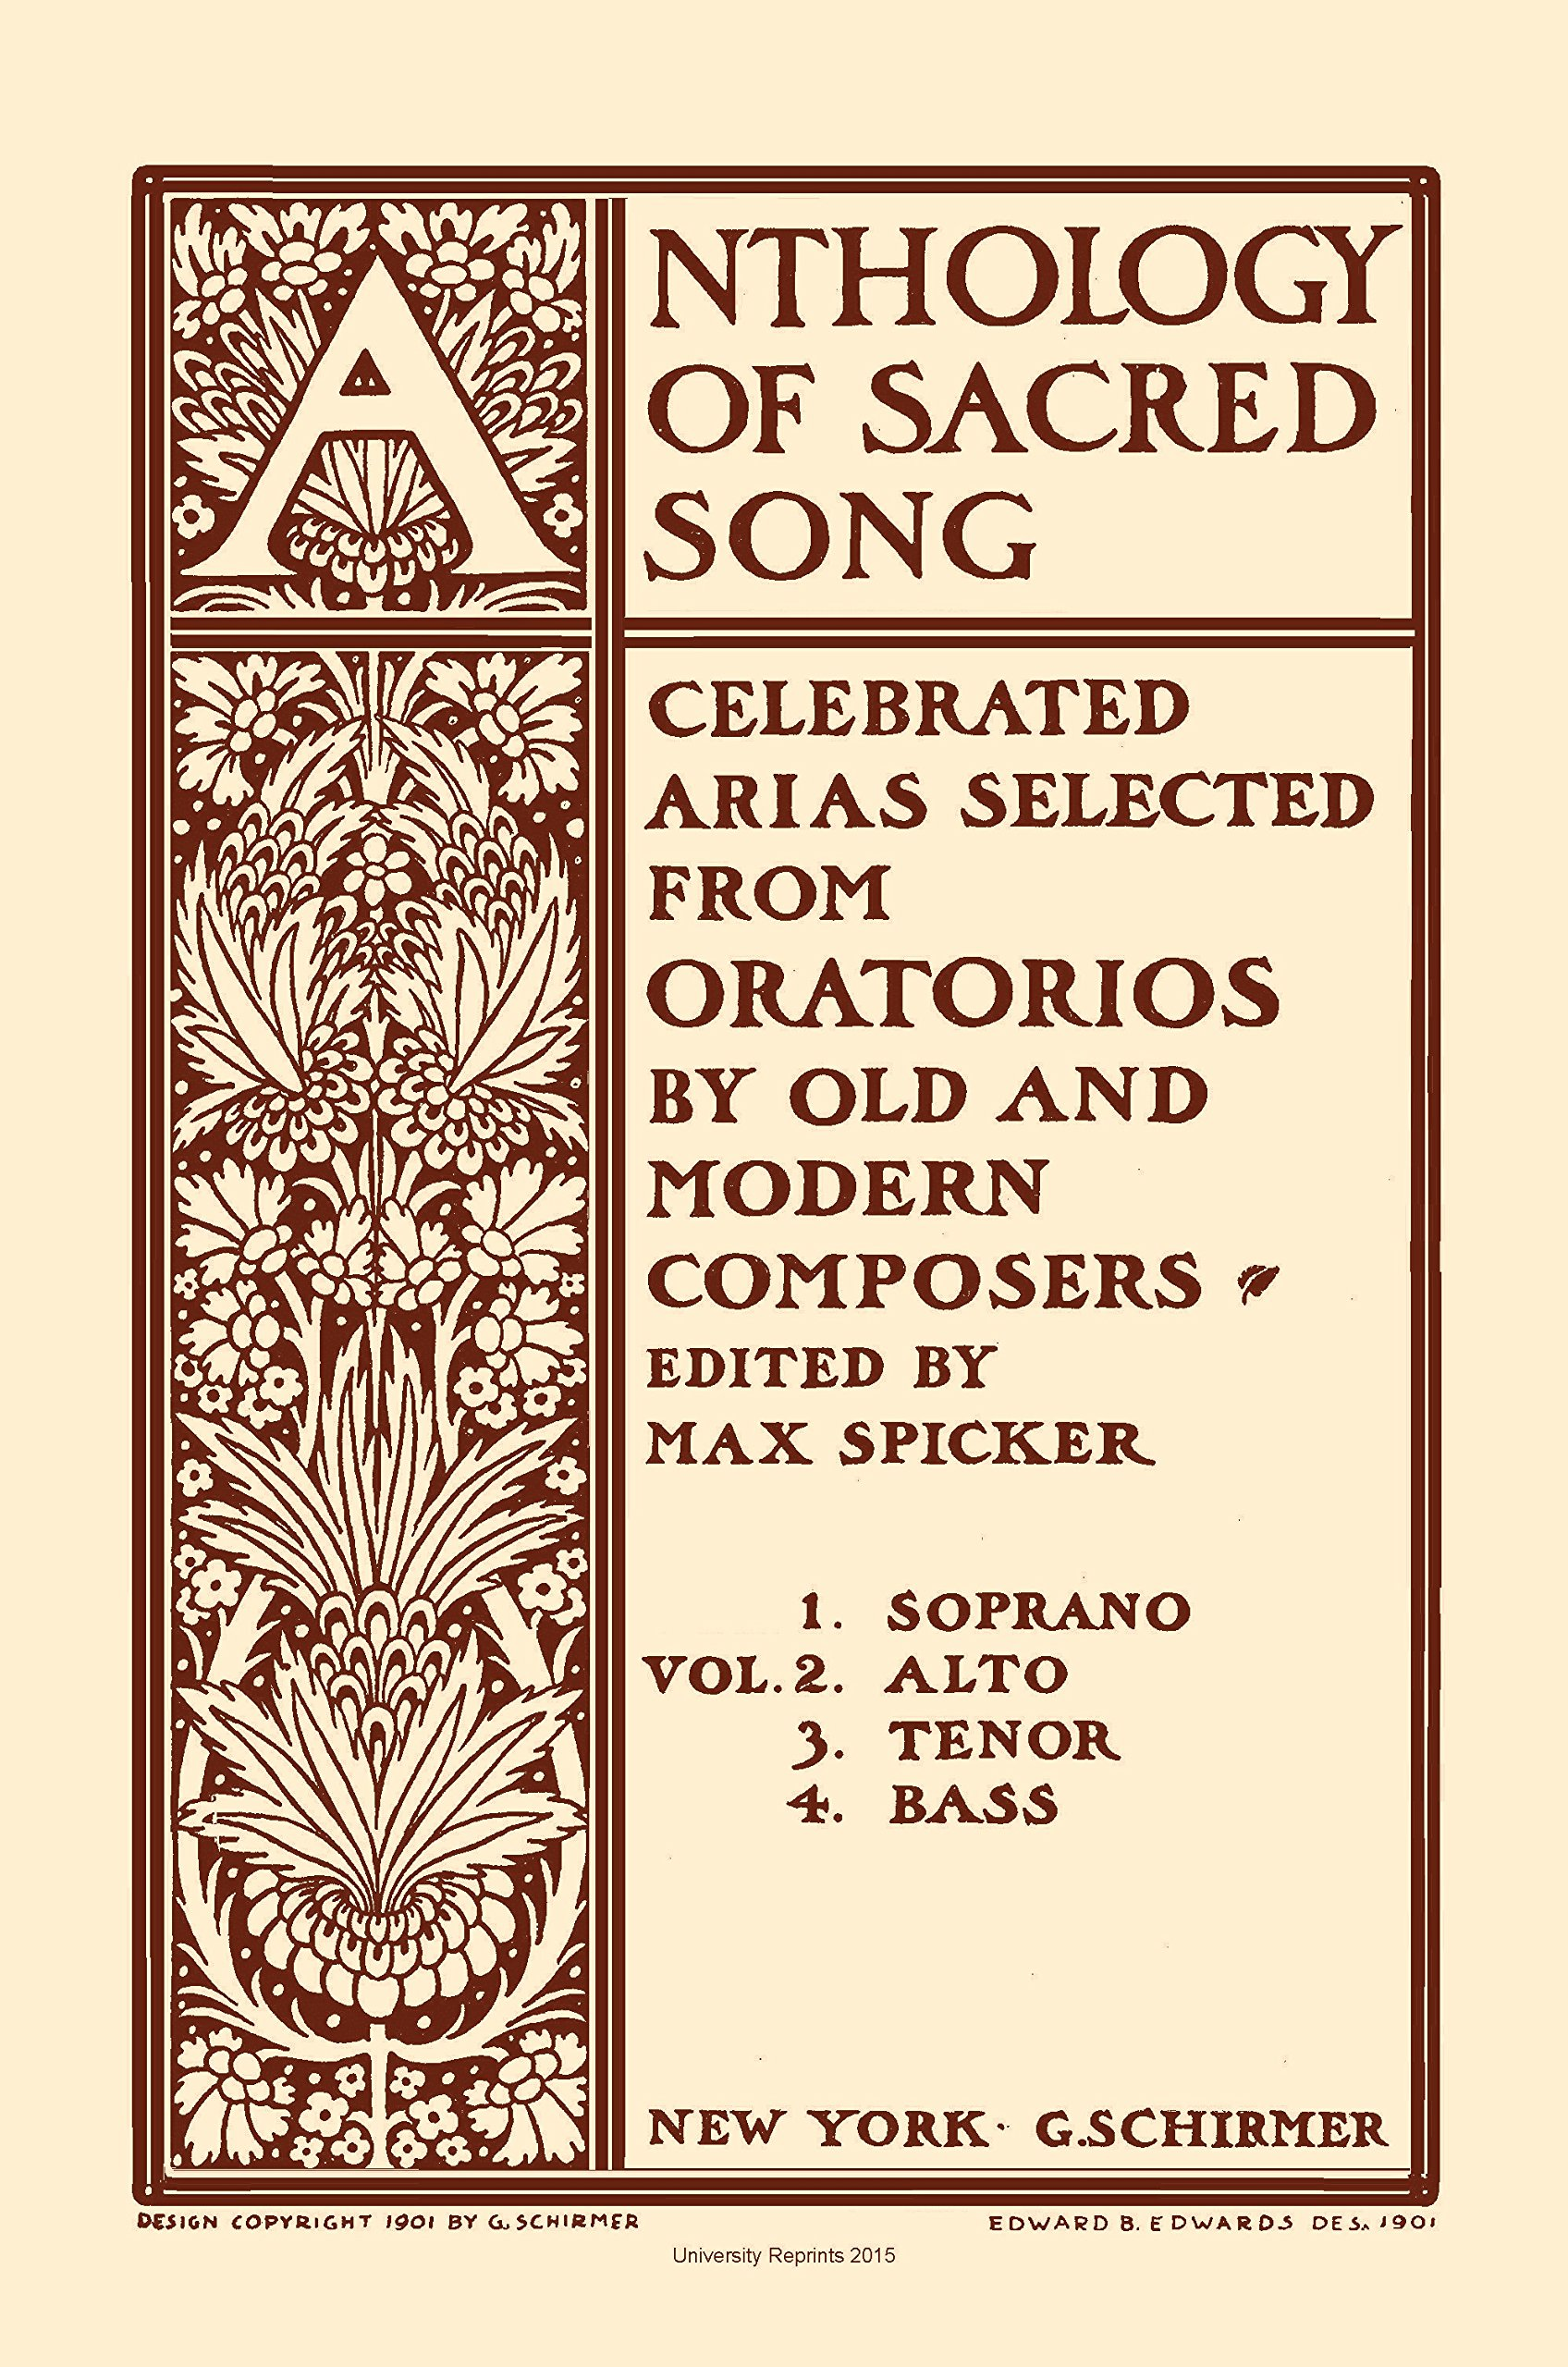 Download Anthology of Sacred Song by Max Spicker. Volume Two Mezzo Alto. [Student Loose Leaf Facsimile Edition. Re-Imaged from Original for Greater Clarity. 2015] pdf